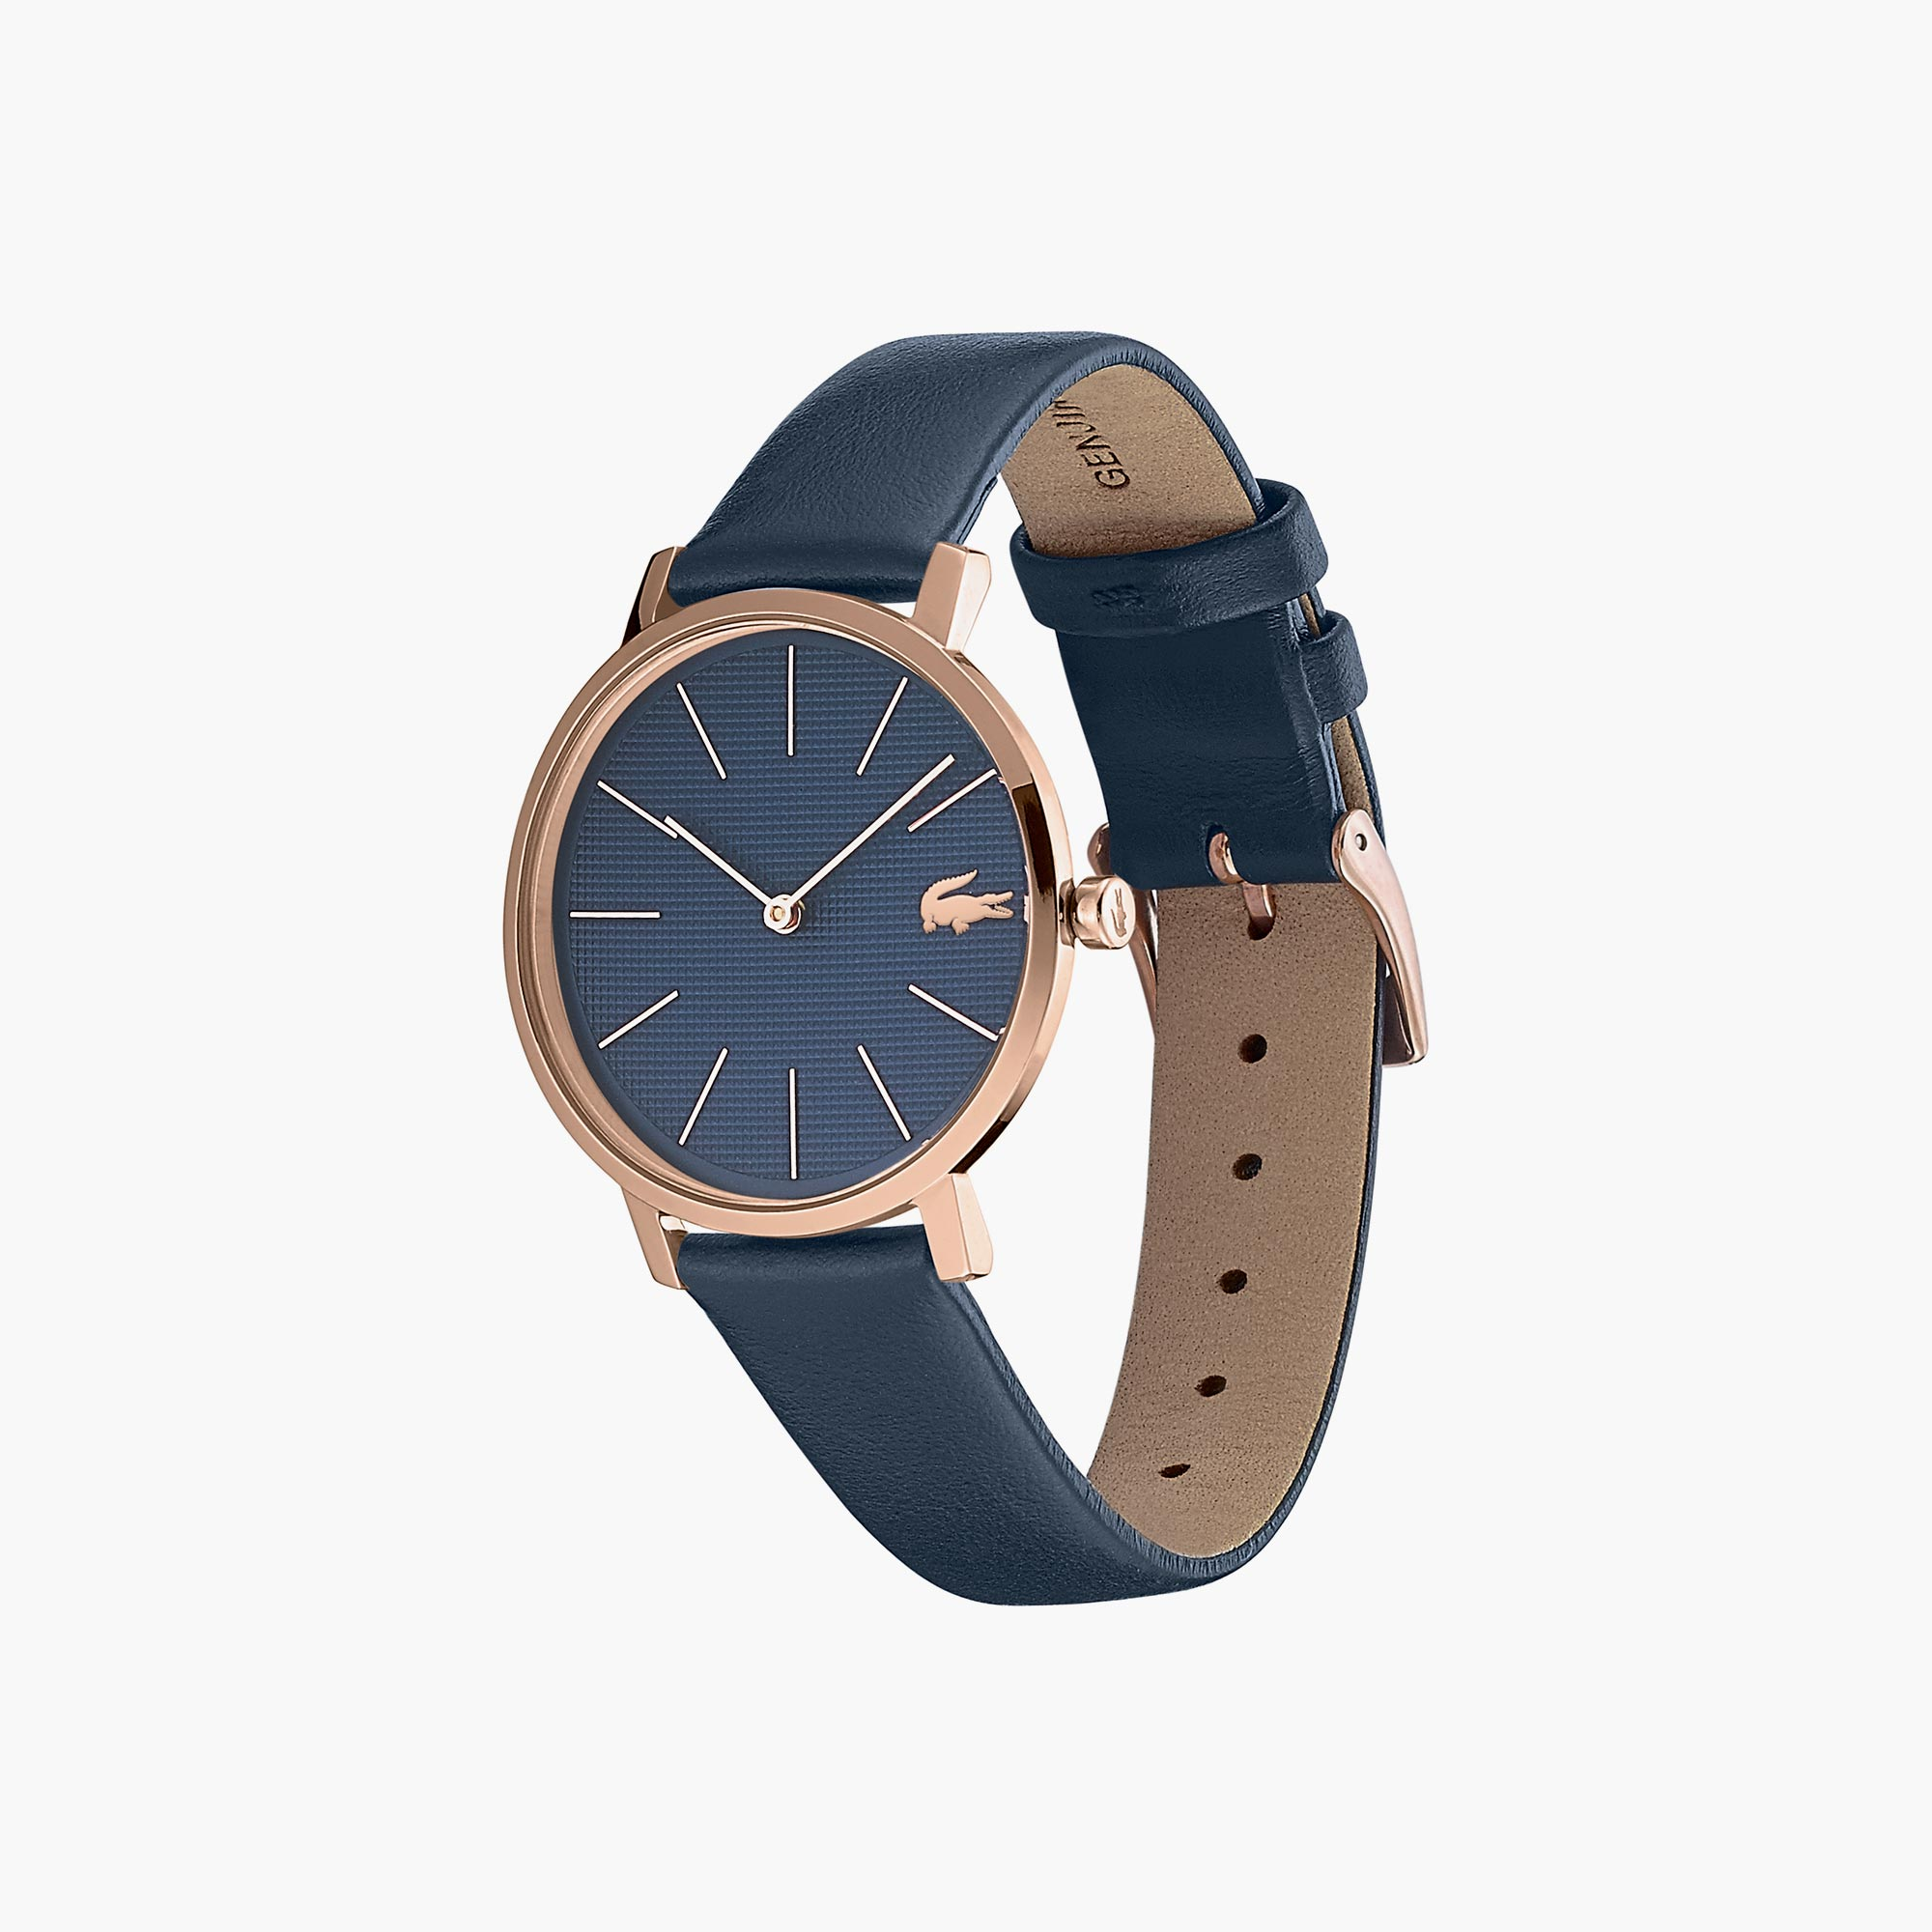 Ladies Moon Watch with Blue Leather Strap and Blue Dial